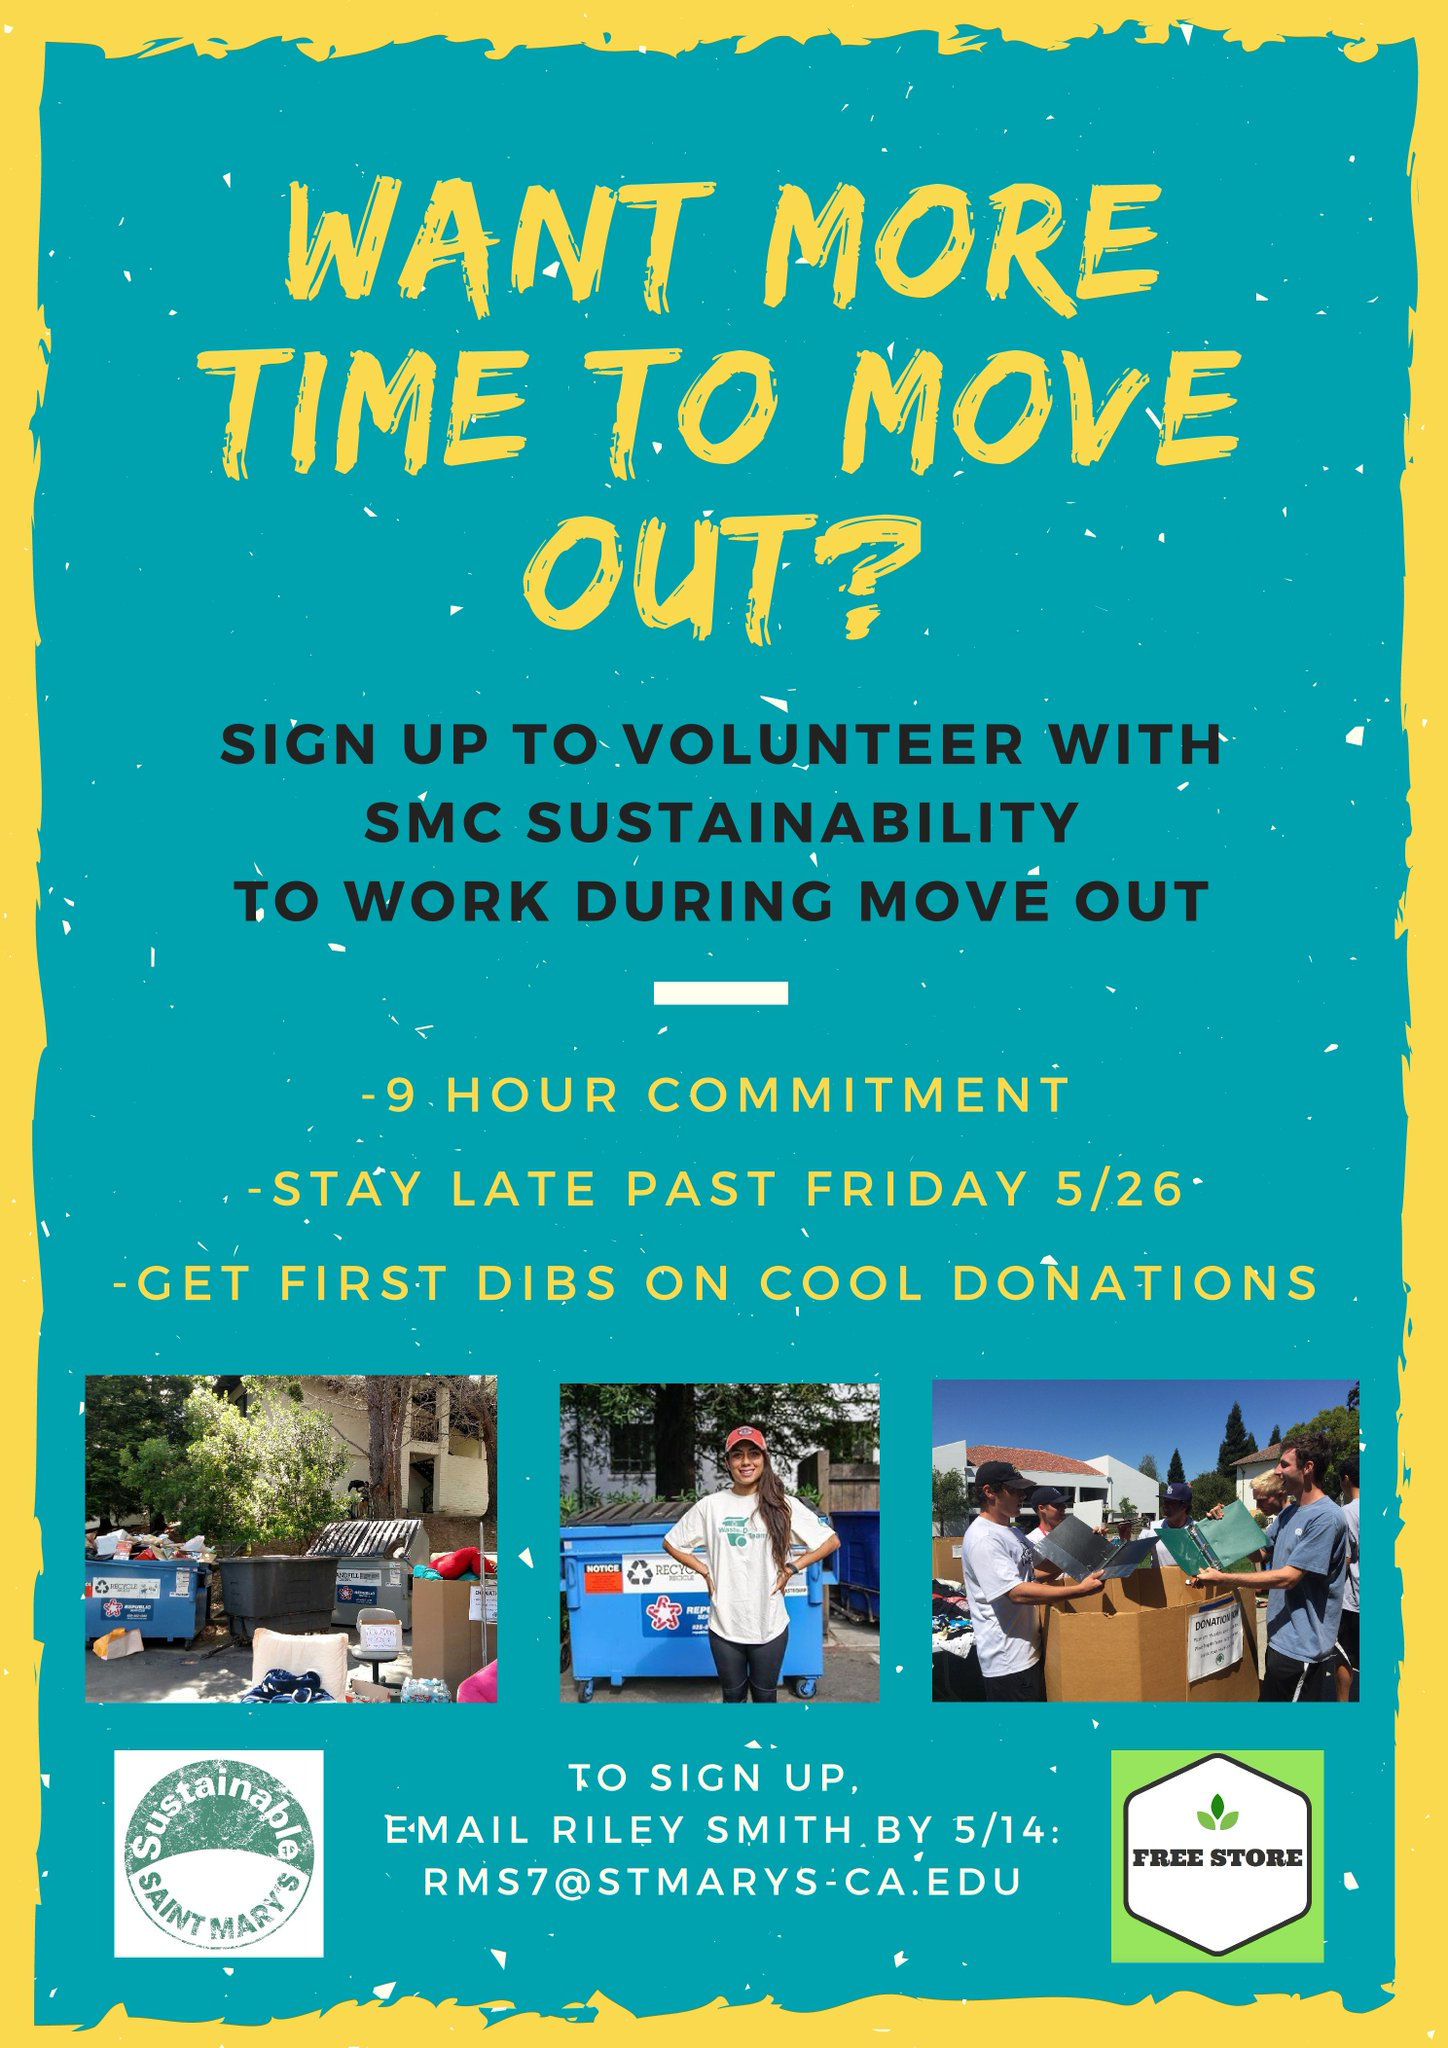 We have a need for ~10 more volunteers for sustainable move out!  #omgsmc #greengaels https://t.co/iicKx5hjQy